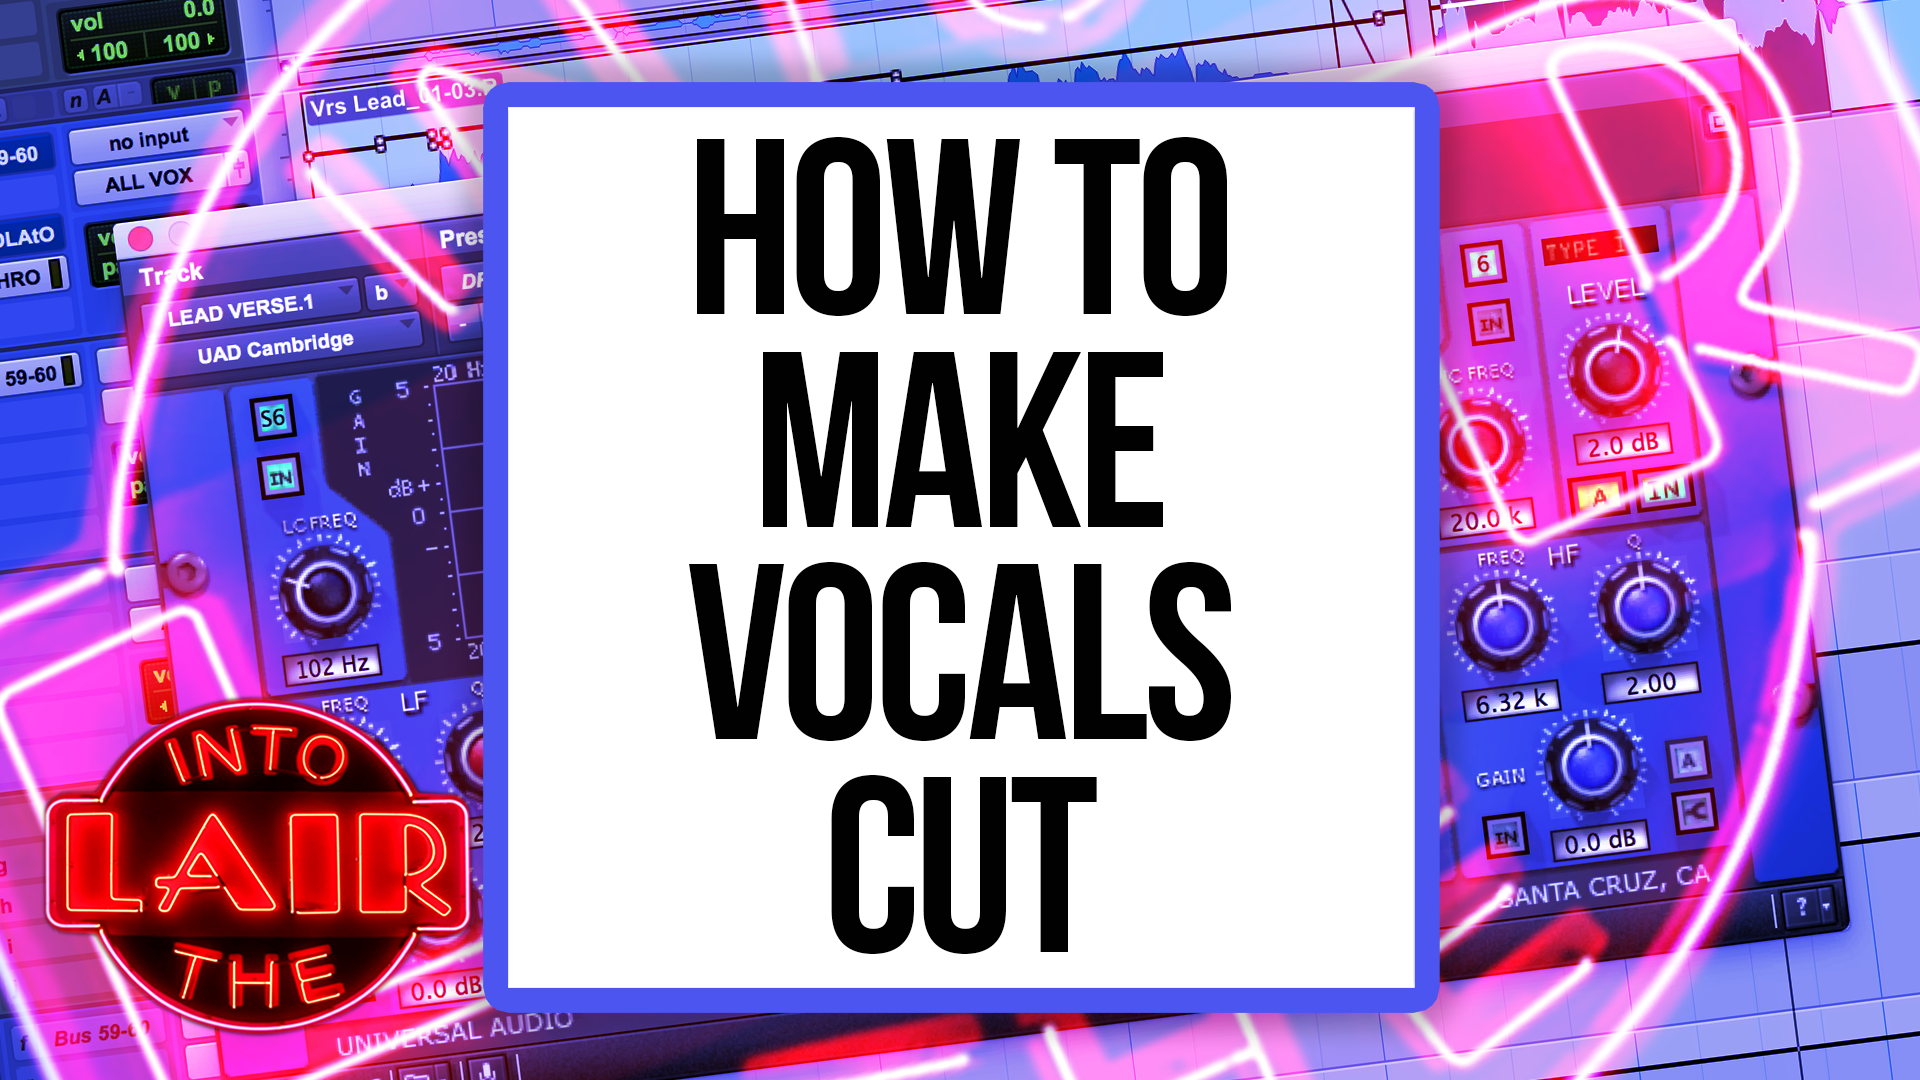 How To Make Vocals Cut